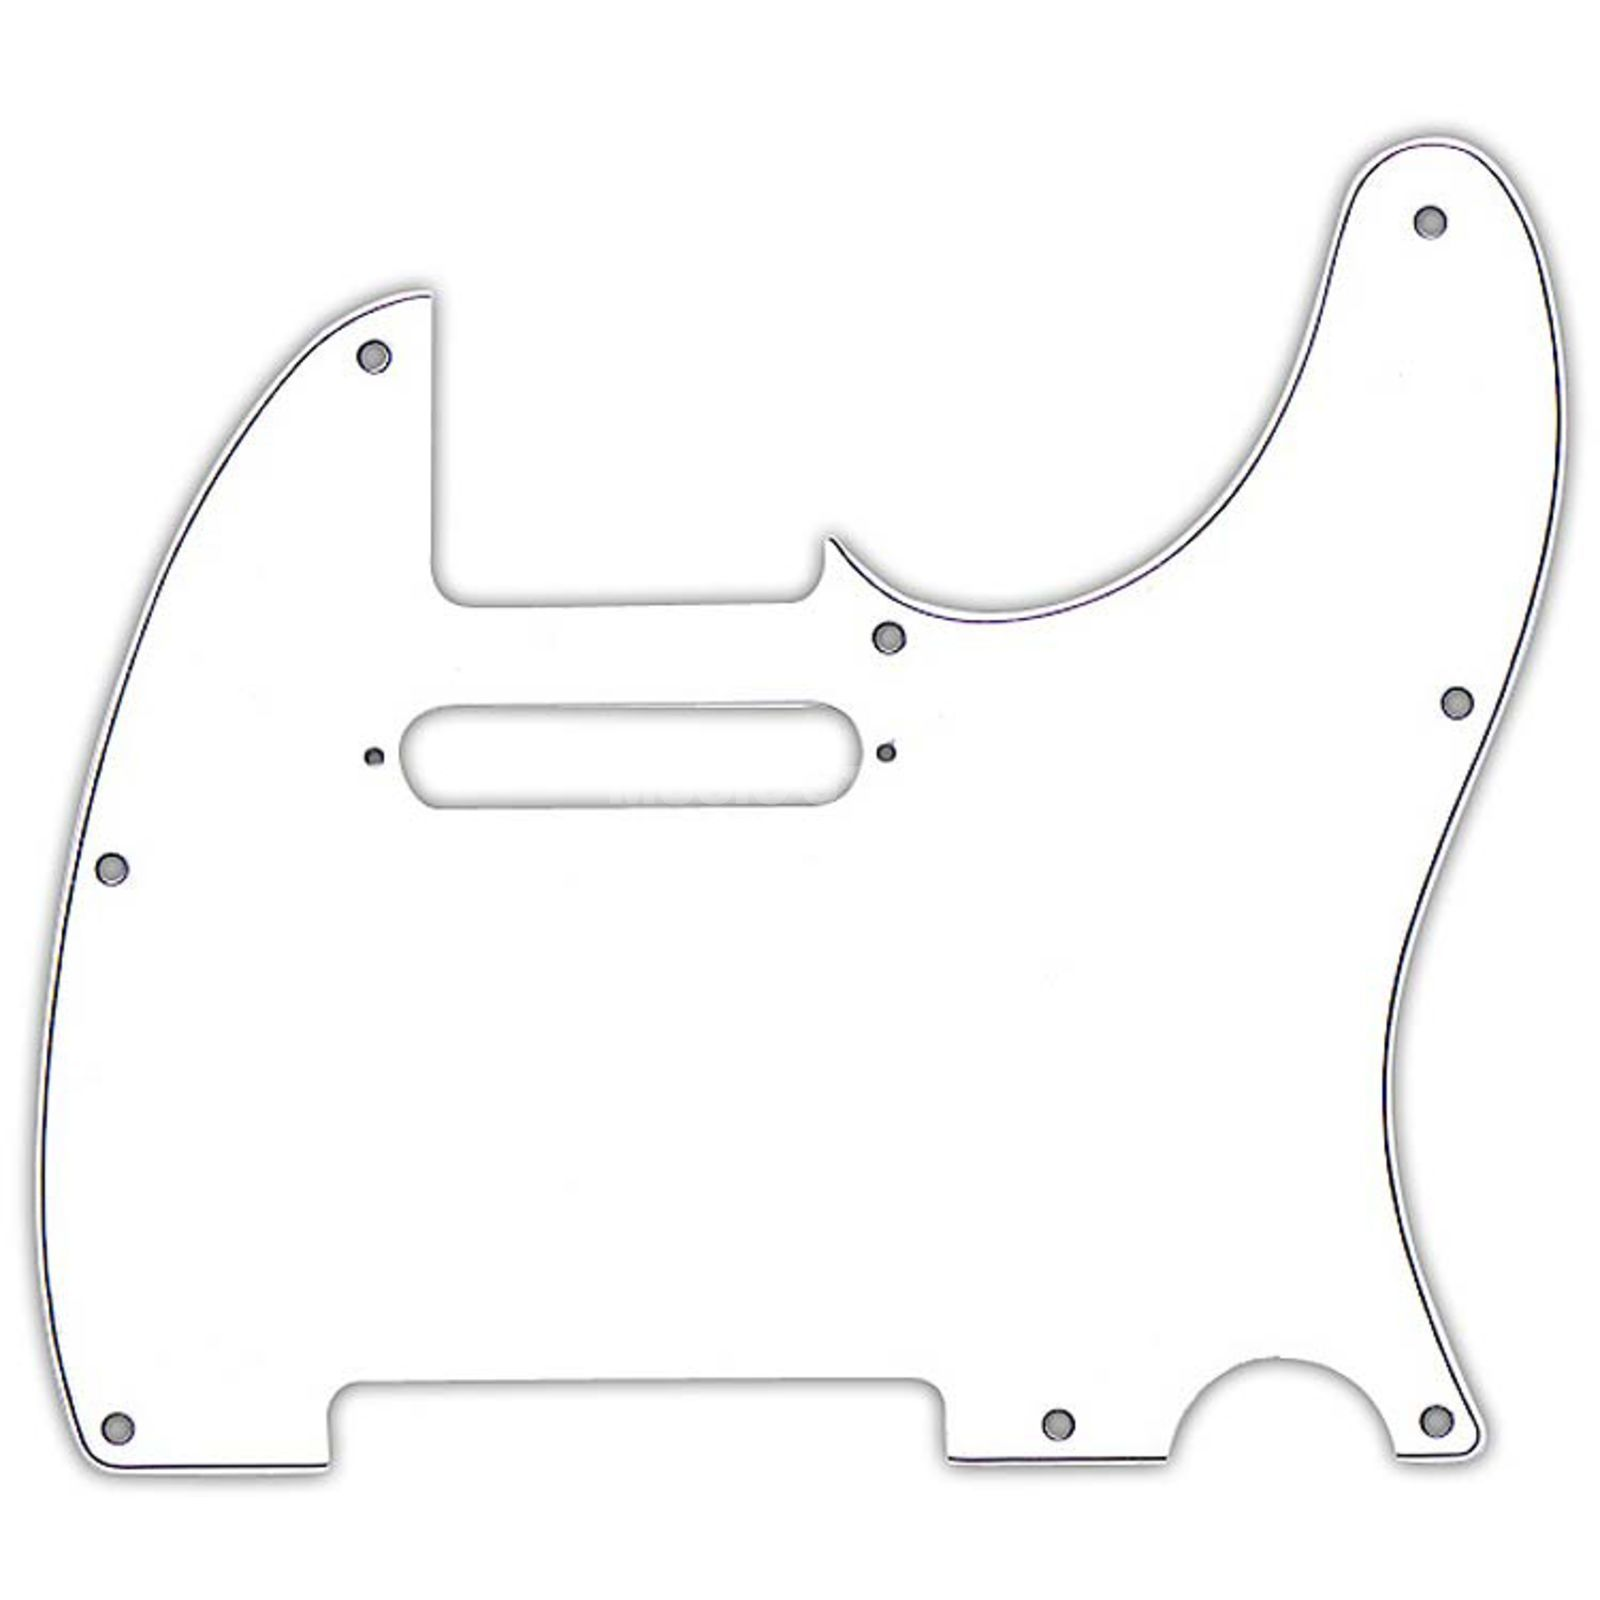 Fender Golpeador Modern Style Pickguard Tele White 3 capas 8 agujeros Imagen del producto